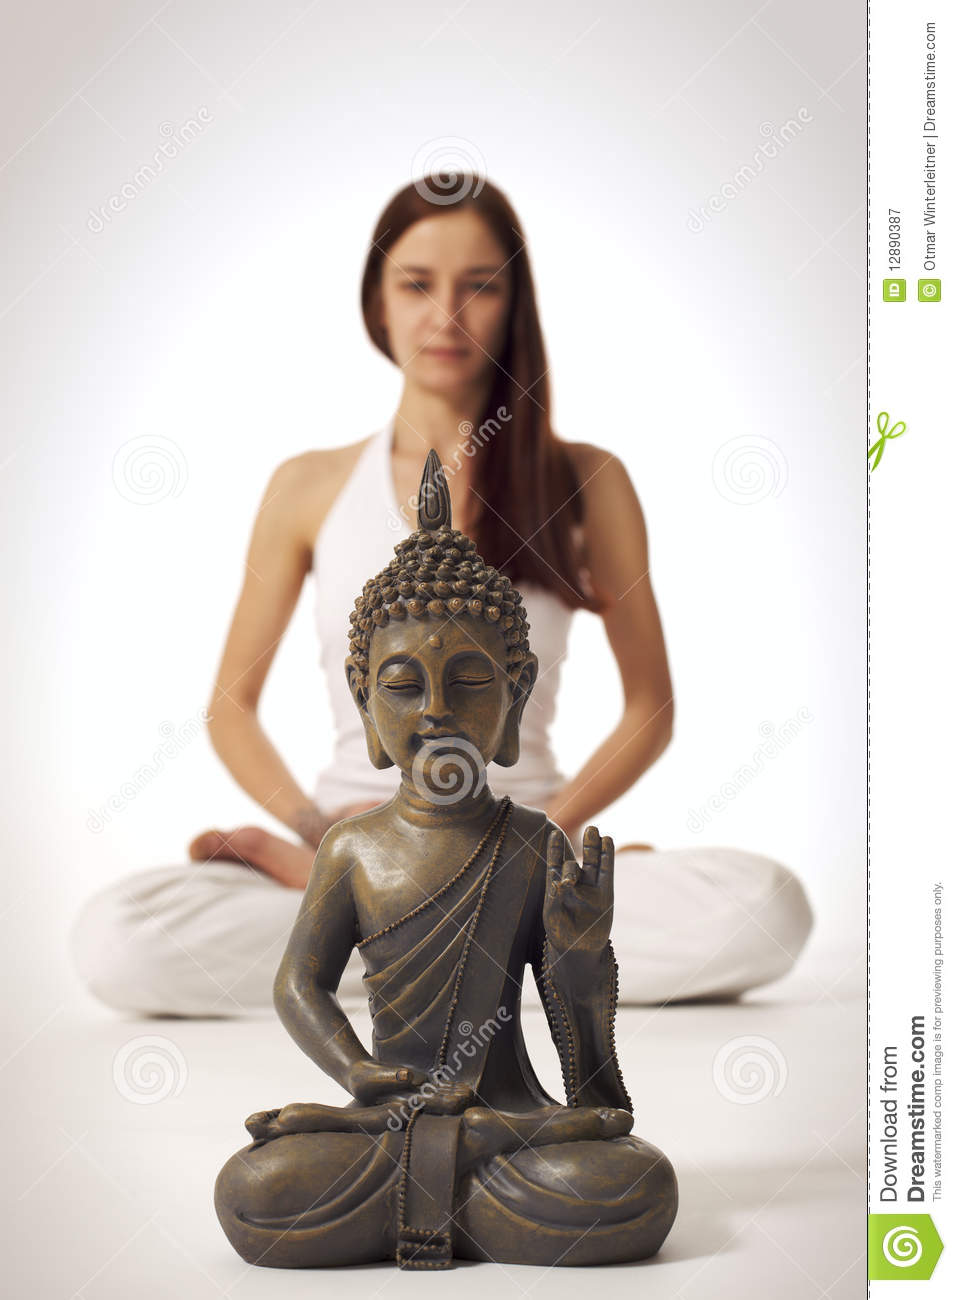 buddhist single women in yorktown Find love in yorktown with free dating site benaughty online dating in yorktown for single men and women.